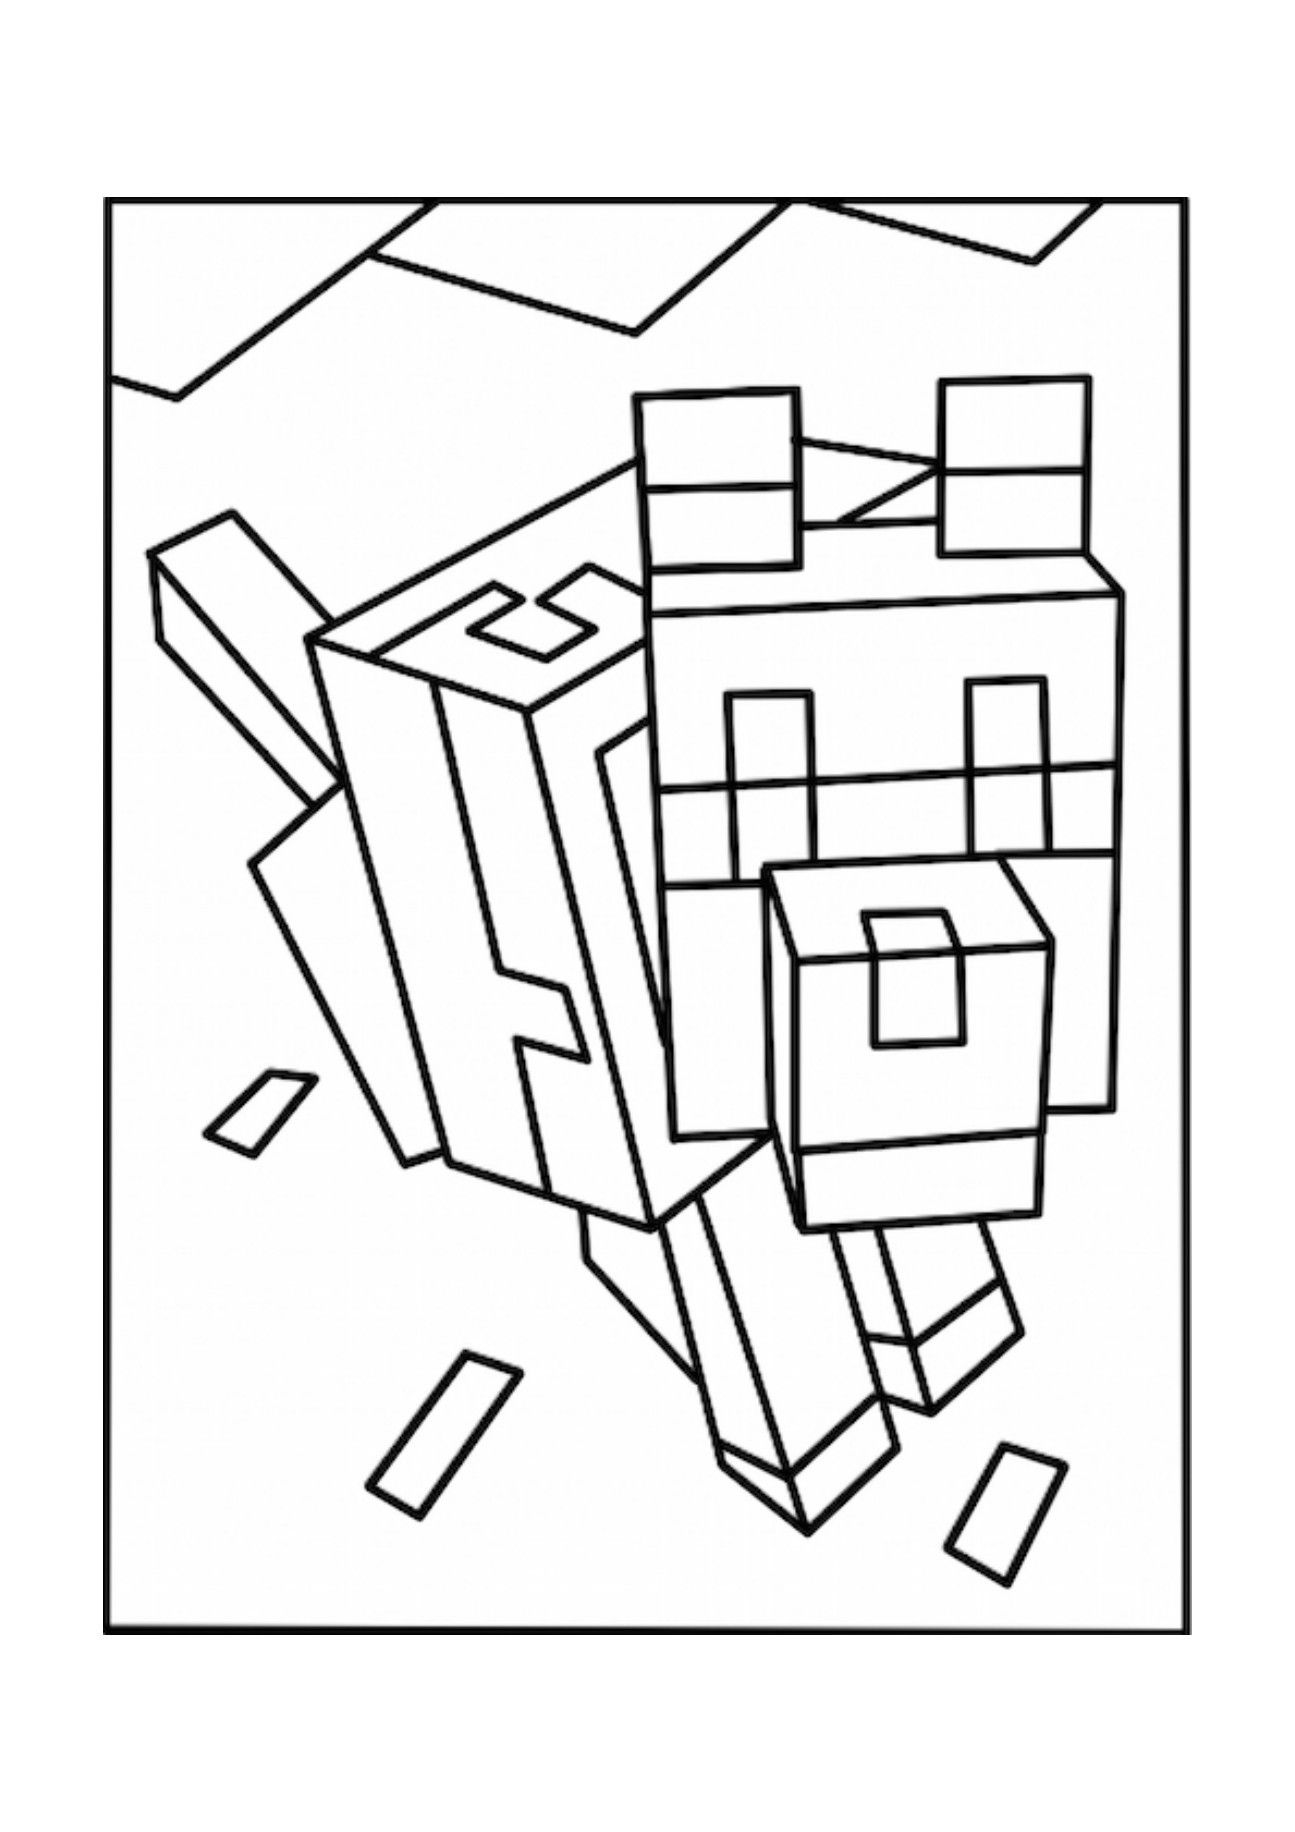 Minecraft Wolf Coloring Page Youngandtae Com In 2020 Minecraft Coloring Pages Free Coloring Pages Coloring Pages